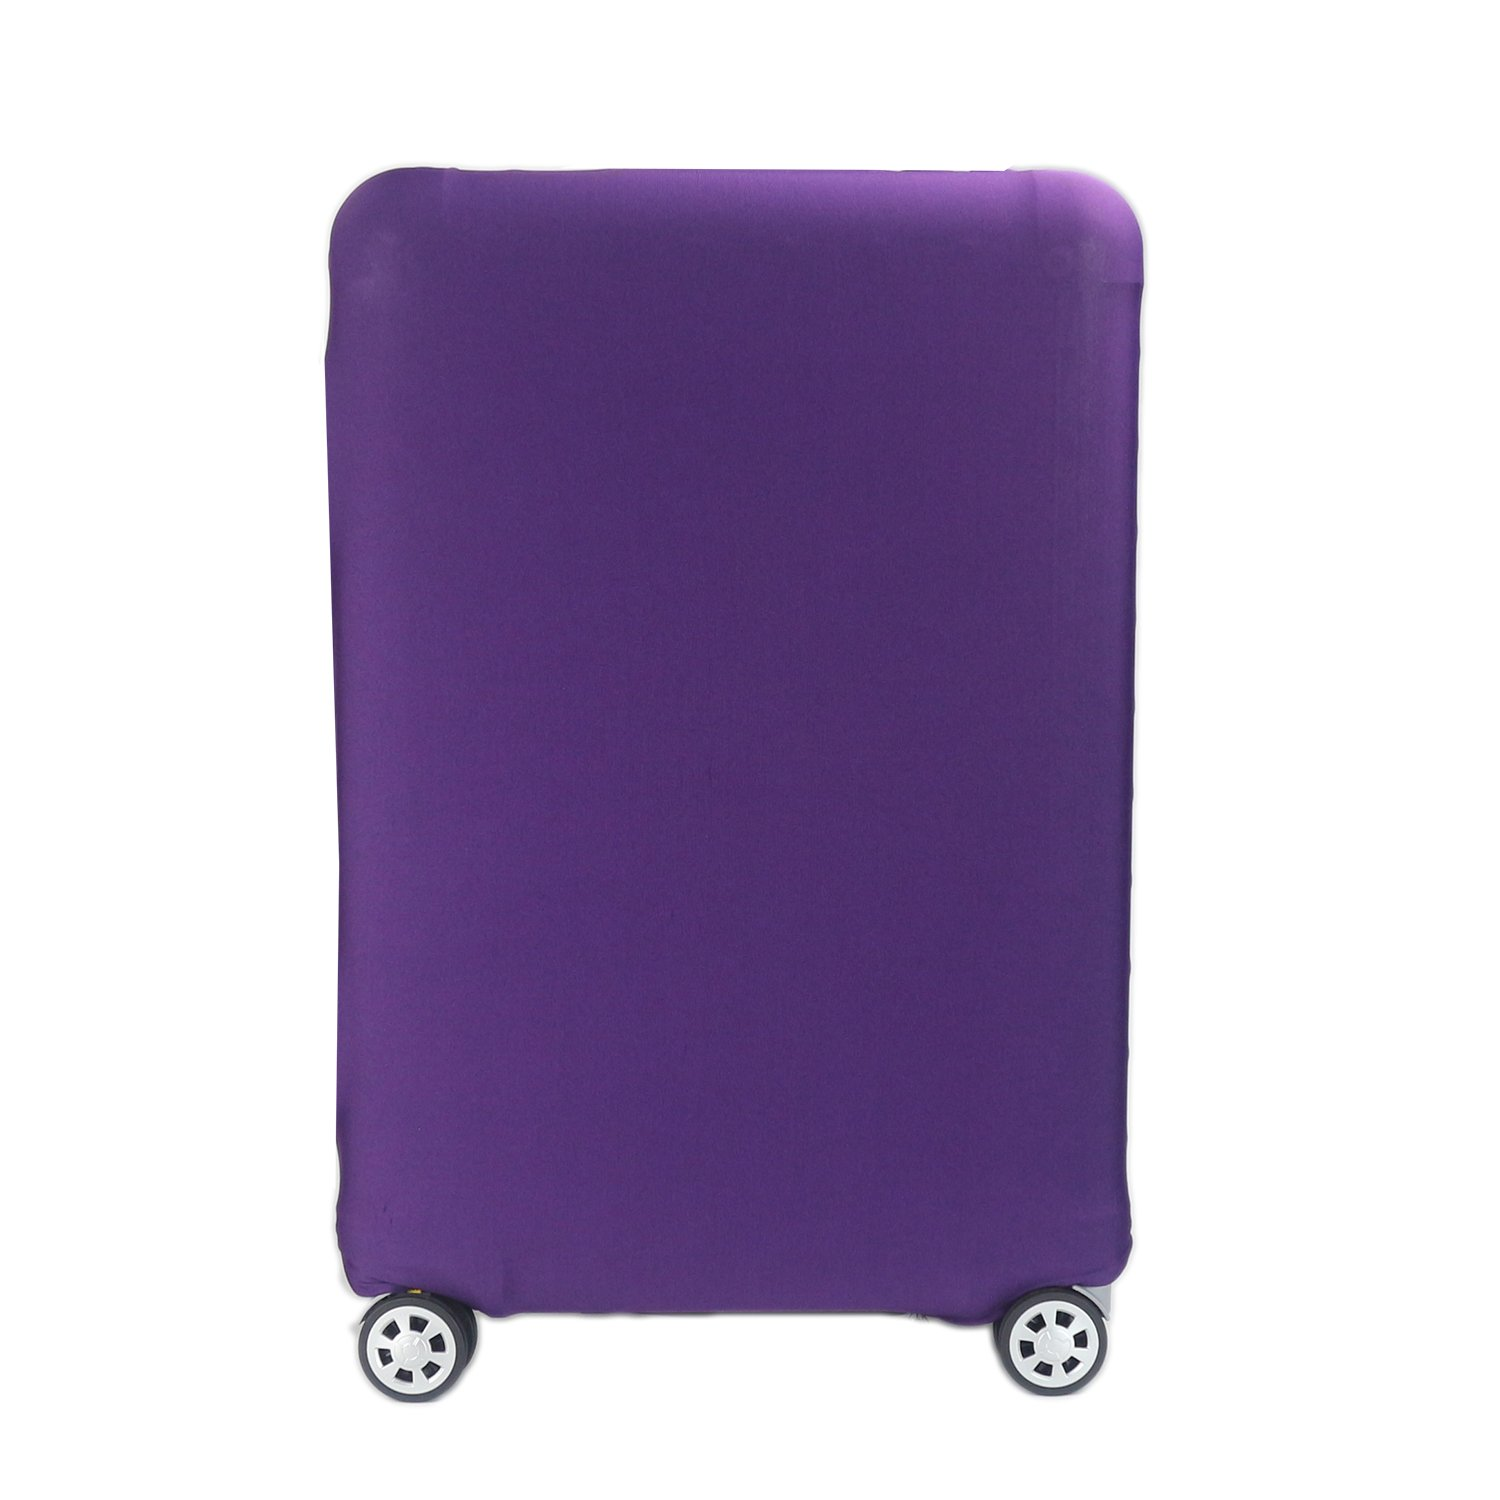 TOGEDI Suitcase Protective Bag Dust Proof Cover for Luggage Fits 26-28 Inch